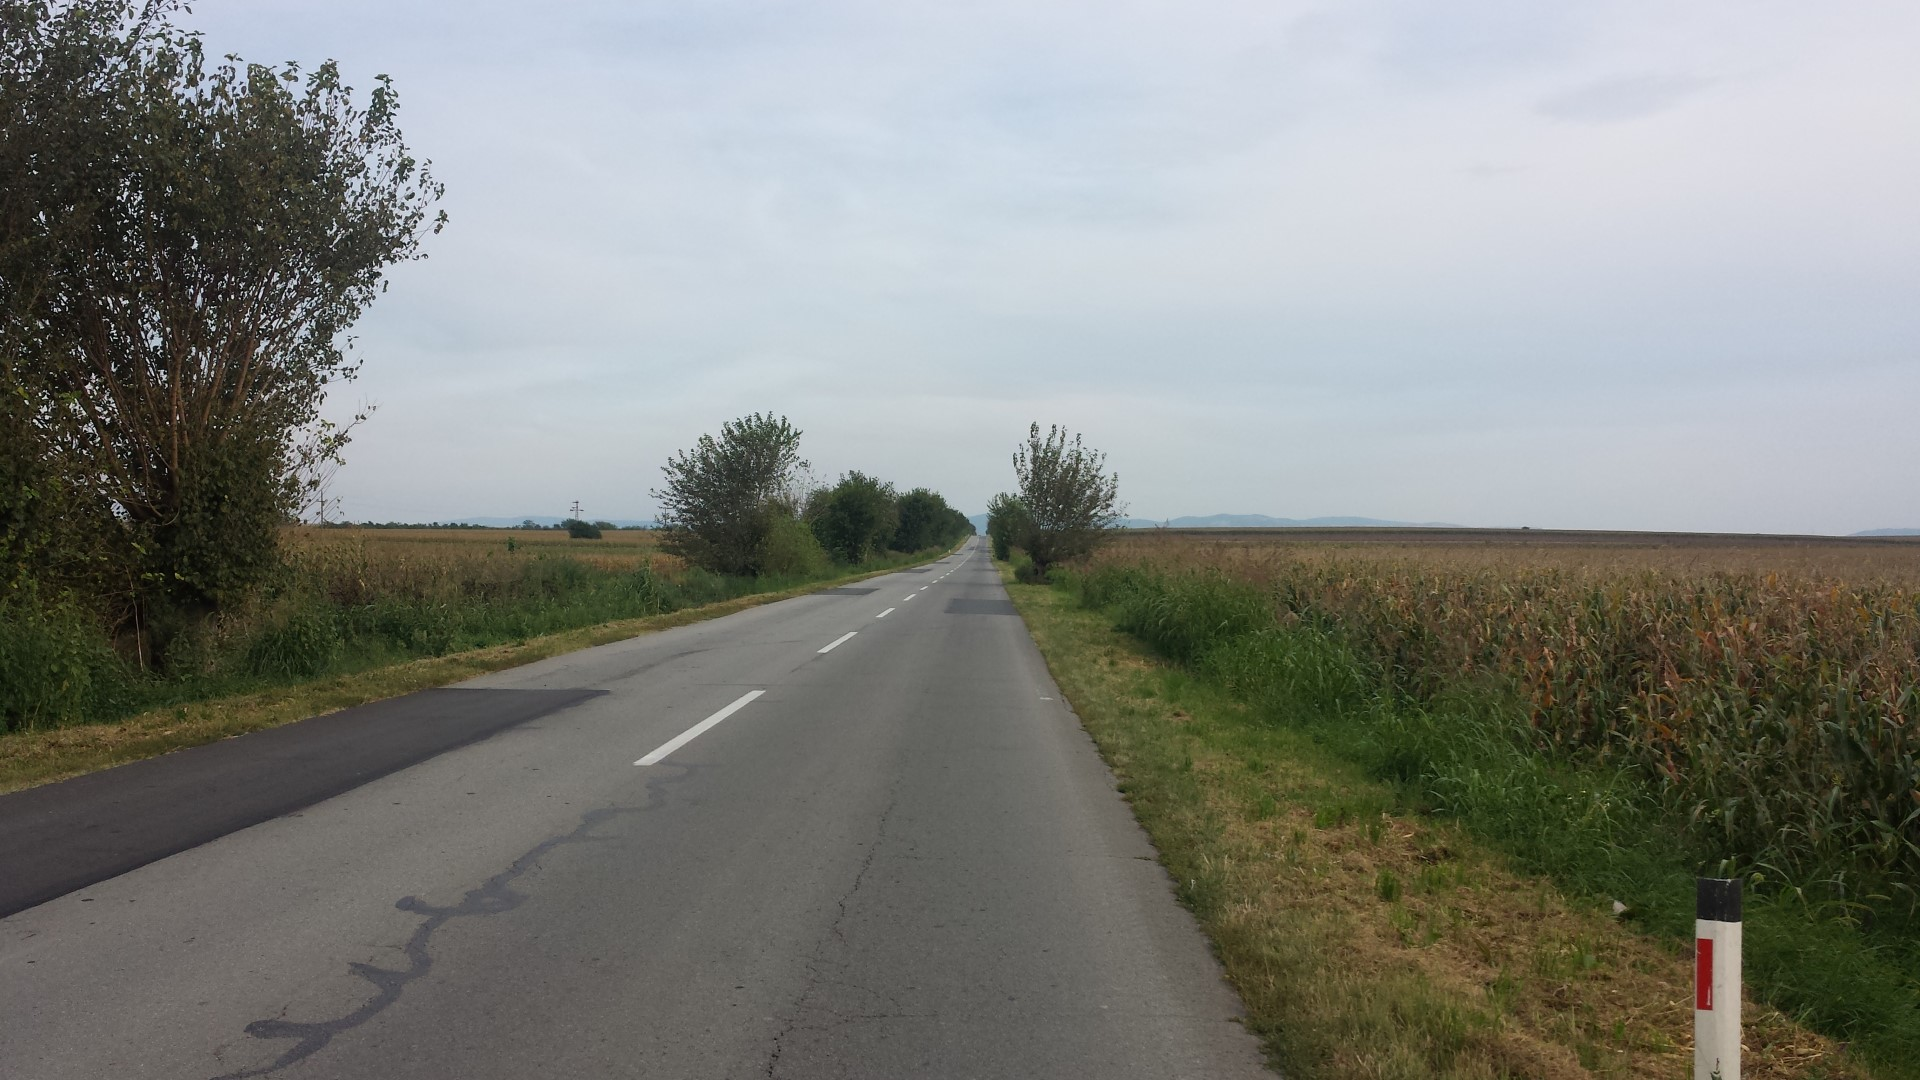 Cycling in strong wind towards Bela Crkva